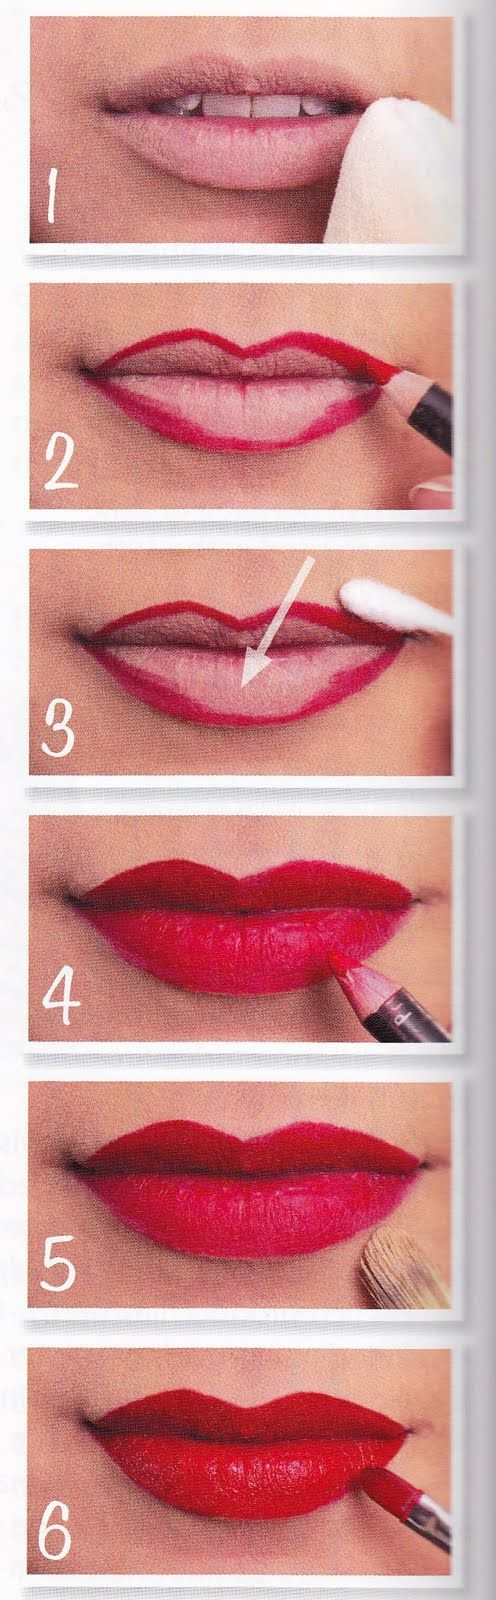 perfect red lip. yep.: Red Lipsticks, Make Up, Beauty Tips, Perfect Lips, Makeup Tips, Perfect Red Lips, Lip Liner, Redlips